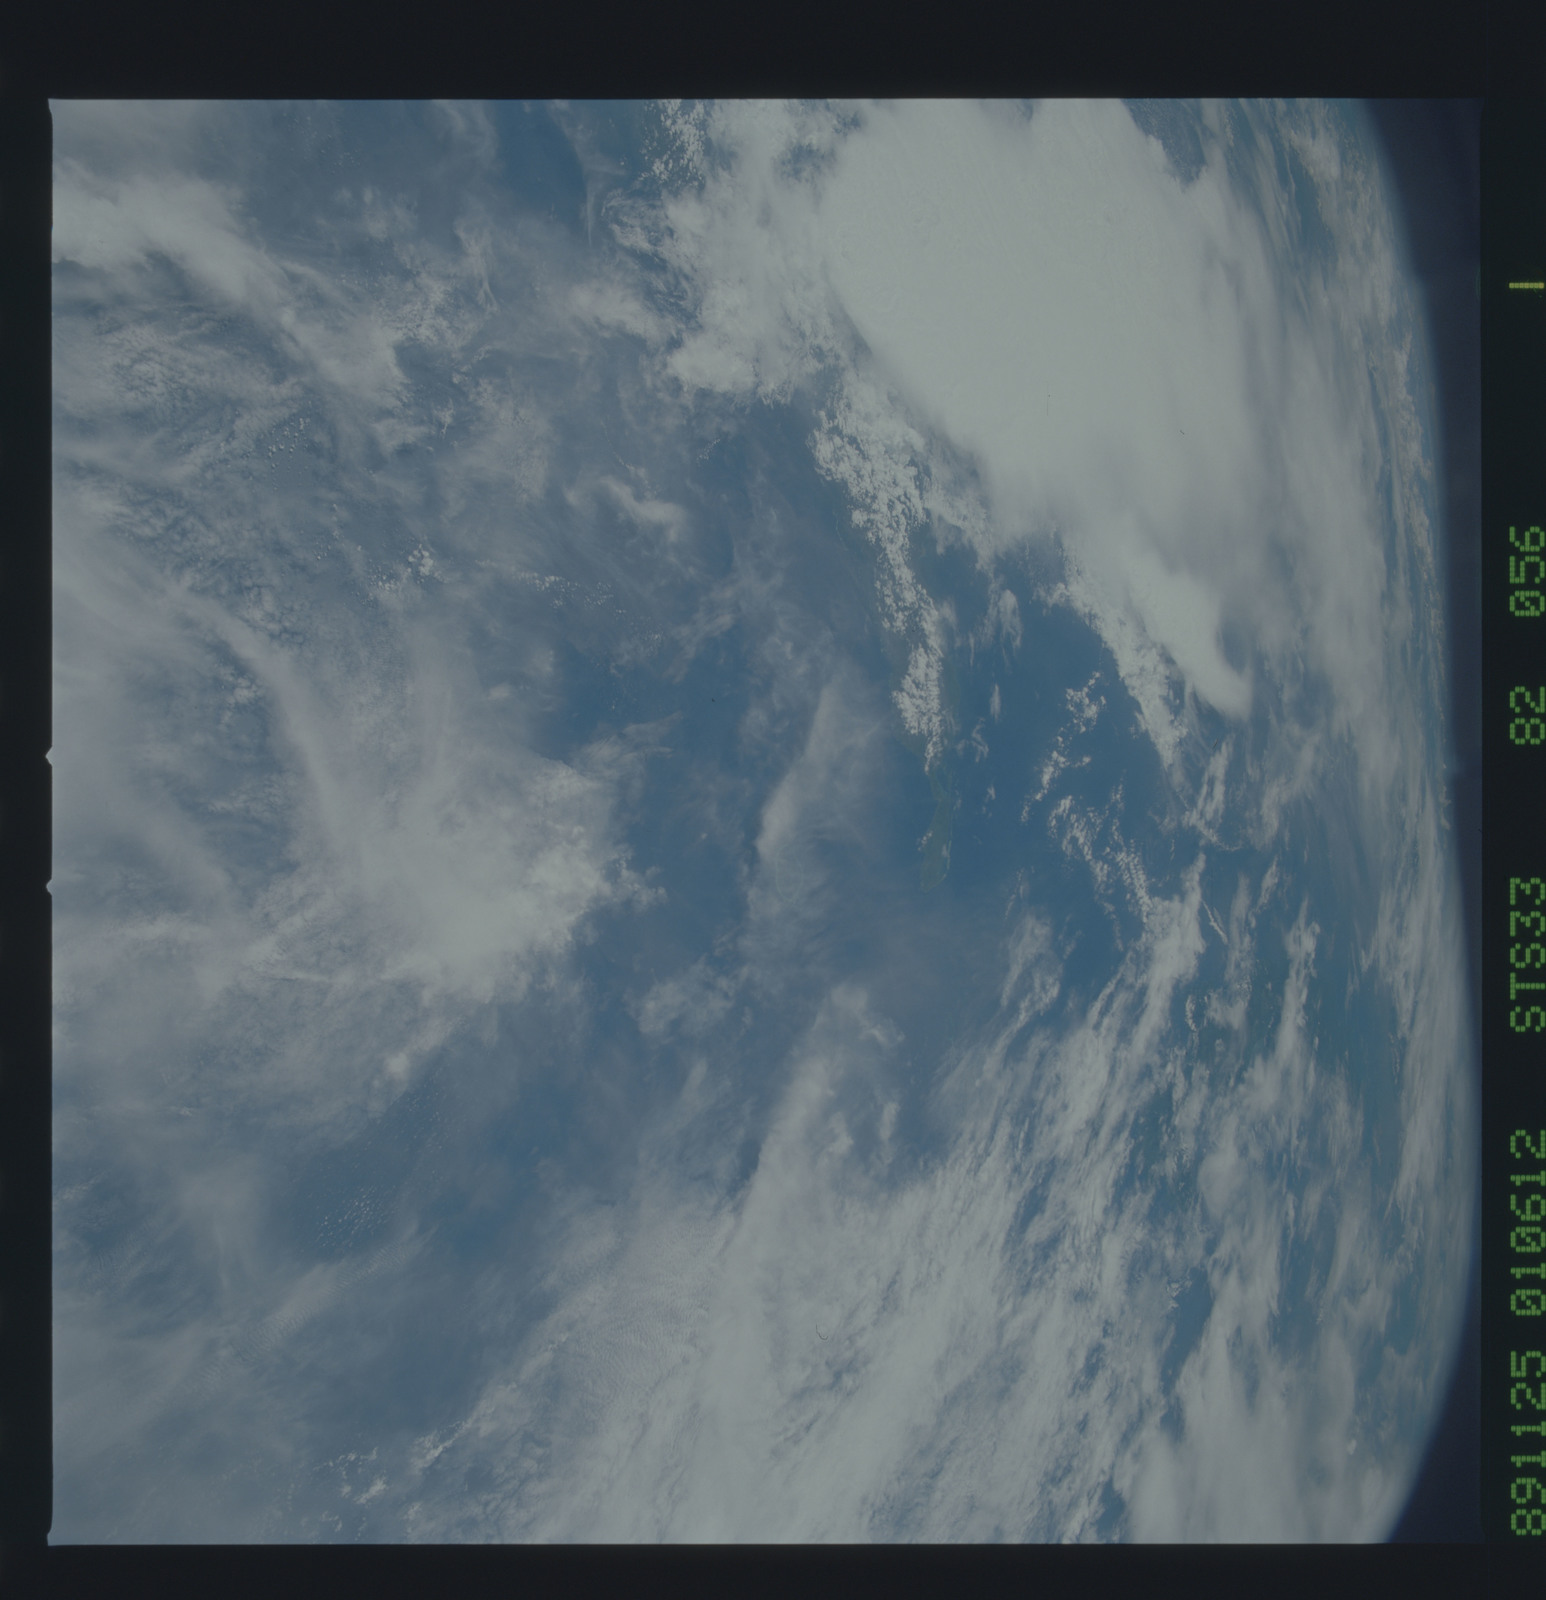 S33-82-056 - STS-033 - STS-33 earth observations